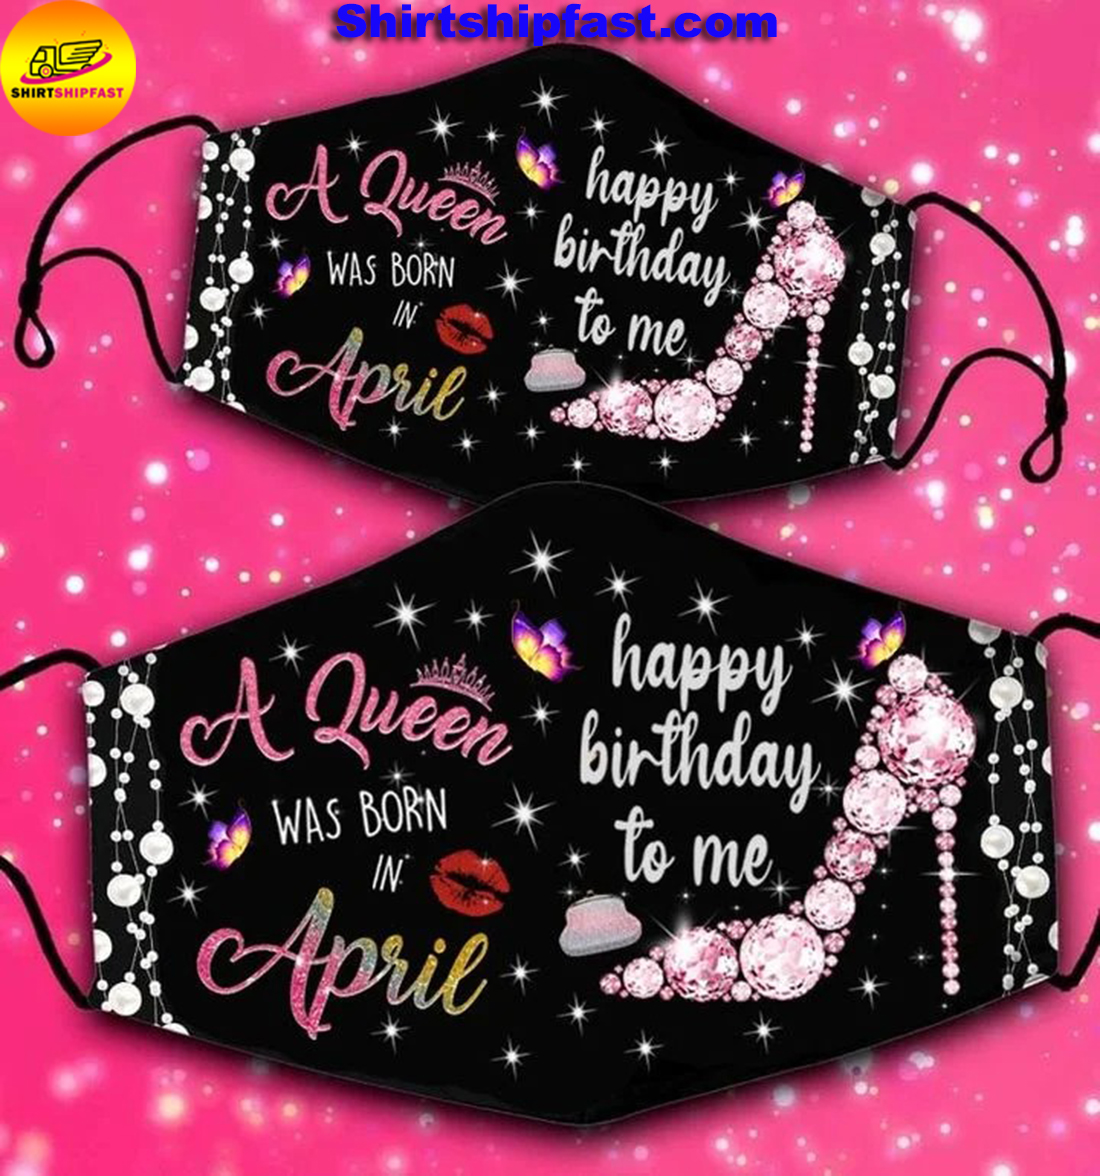 High heels A queen was born in April happy birthday to me face mask